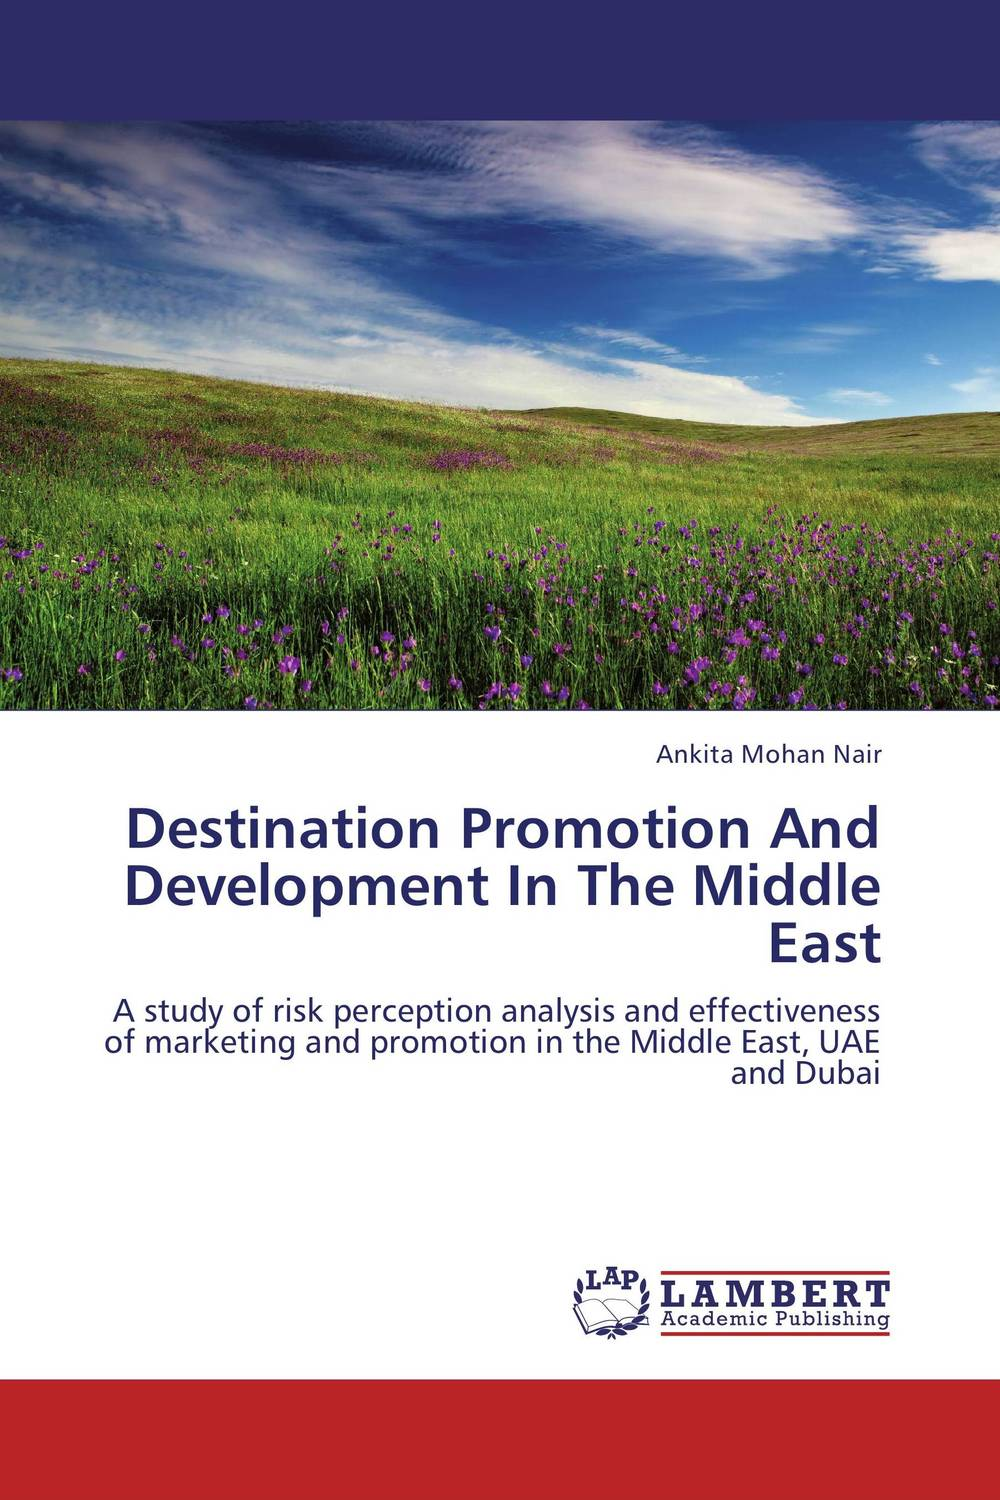 Destination Promotion And Development In The Middle East